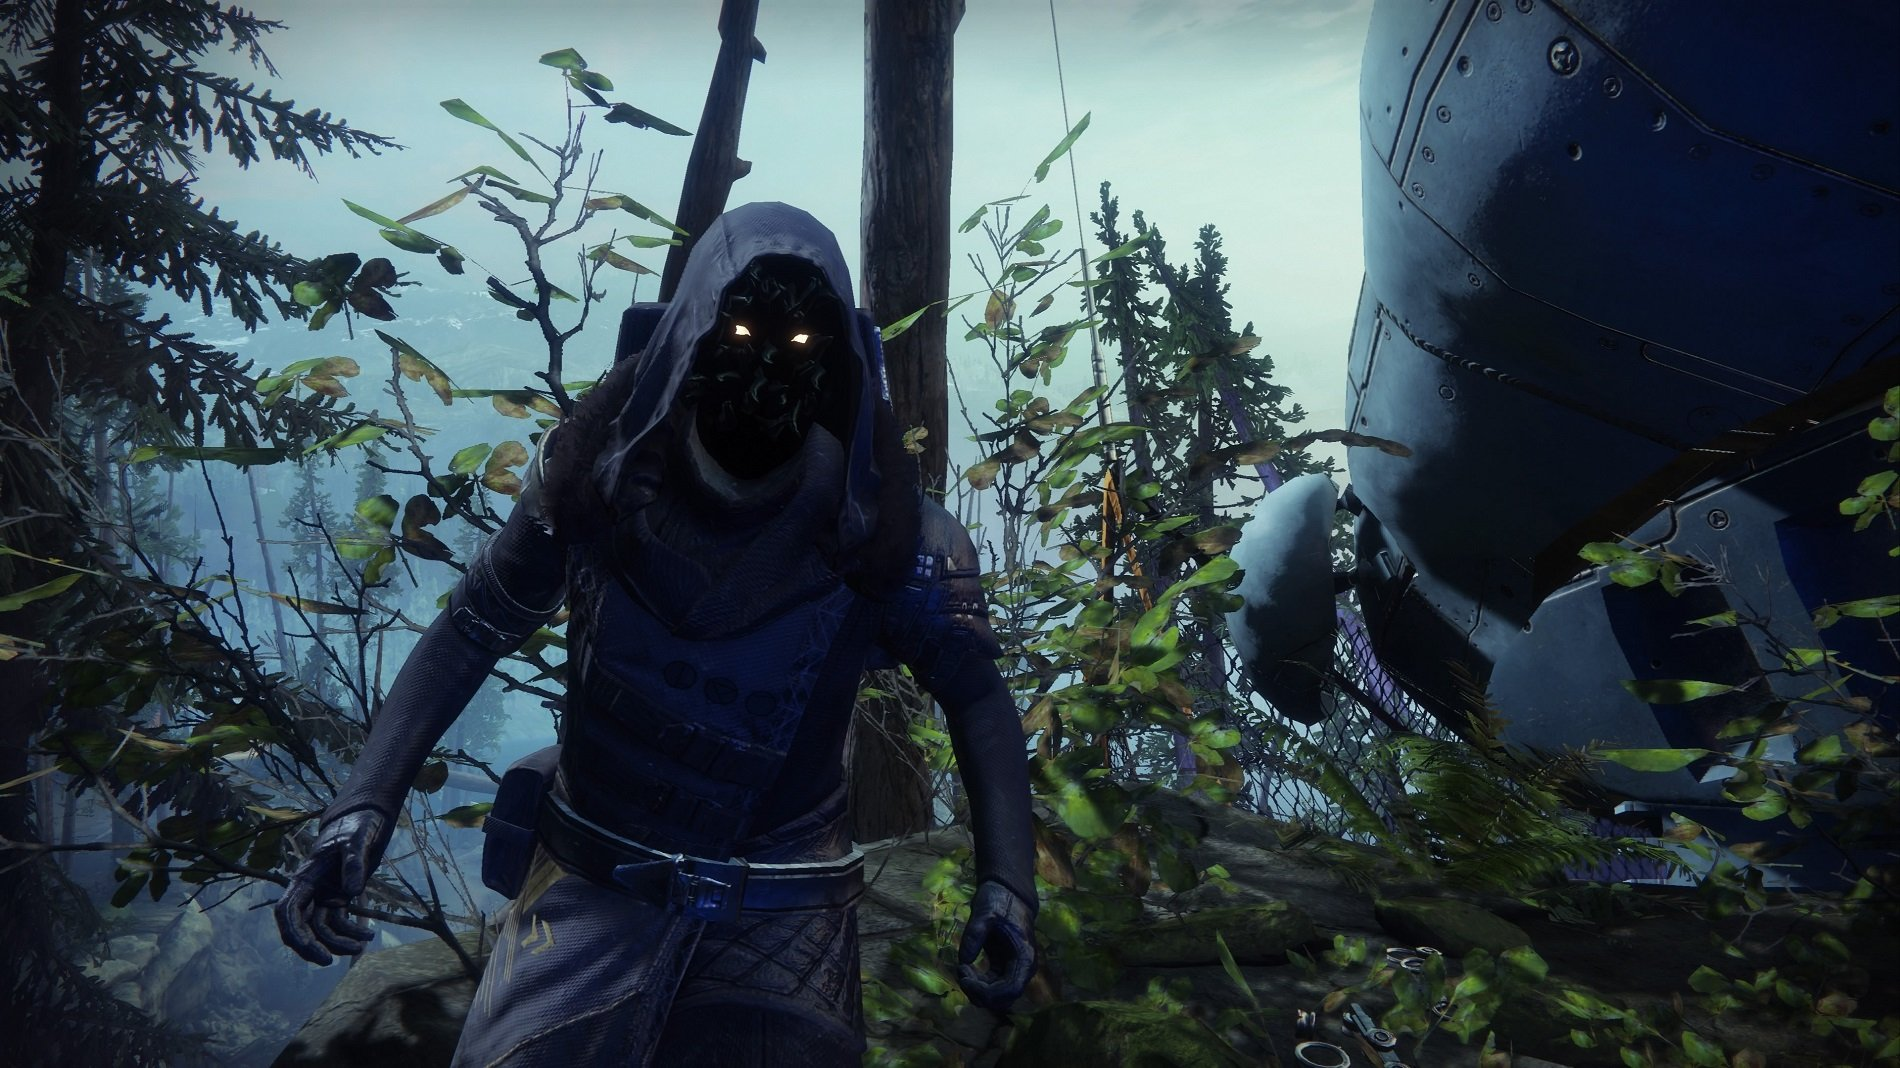 Where to find Xur in Destiny 2 - August 28, 2020